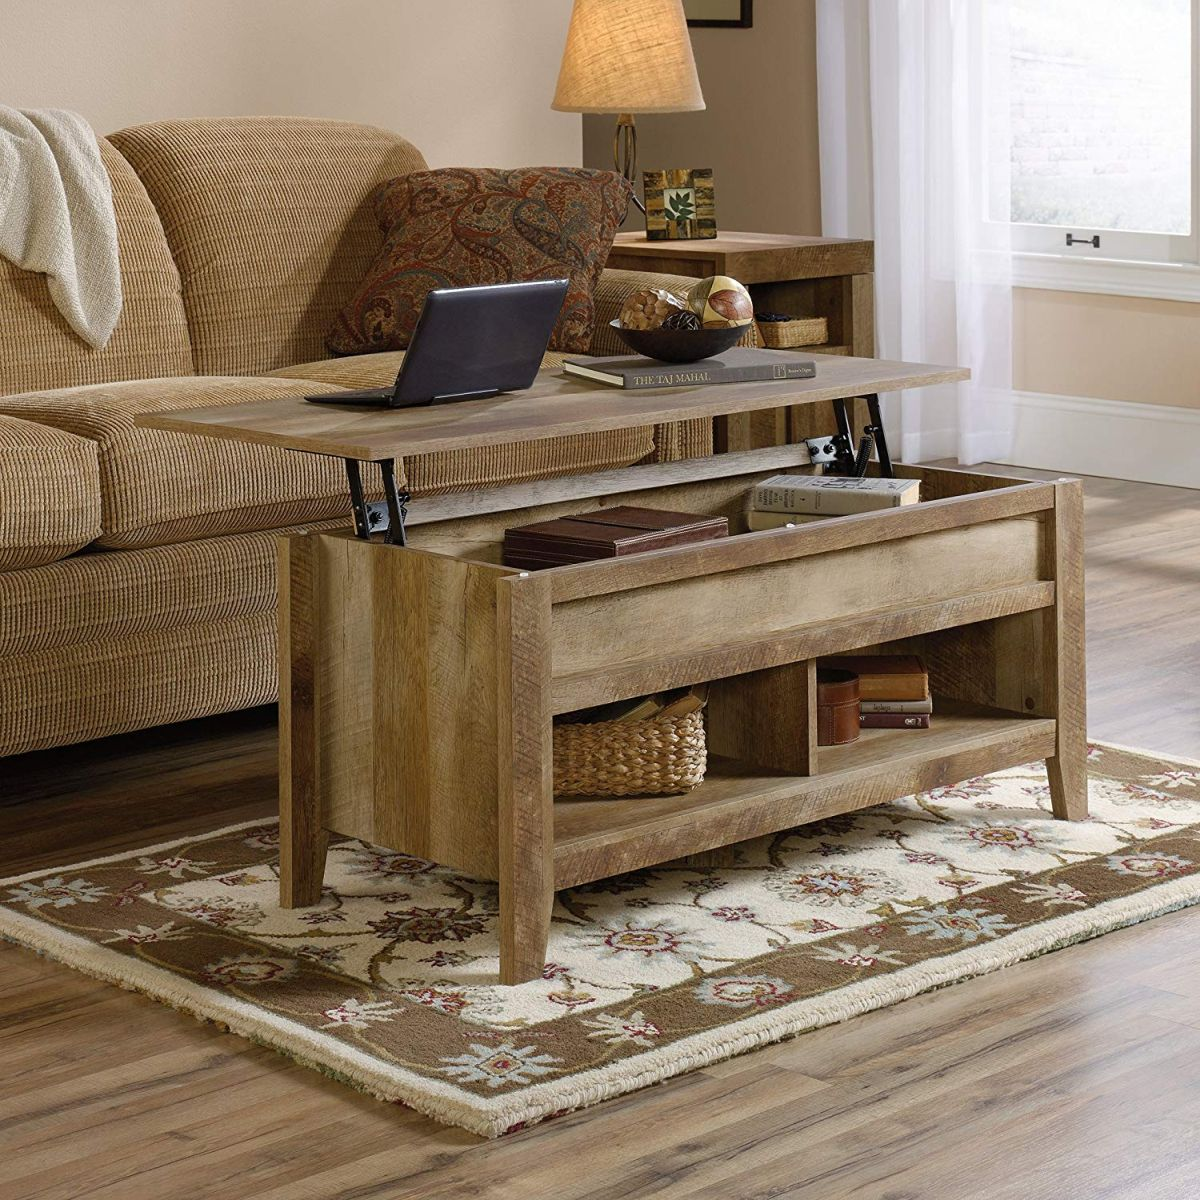 12 lift top coffee tables that surprise you in the best way possible - 12 Lift-Top Coffee Tables That Surprise You In The Best Way Possible